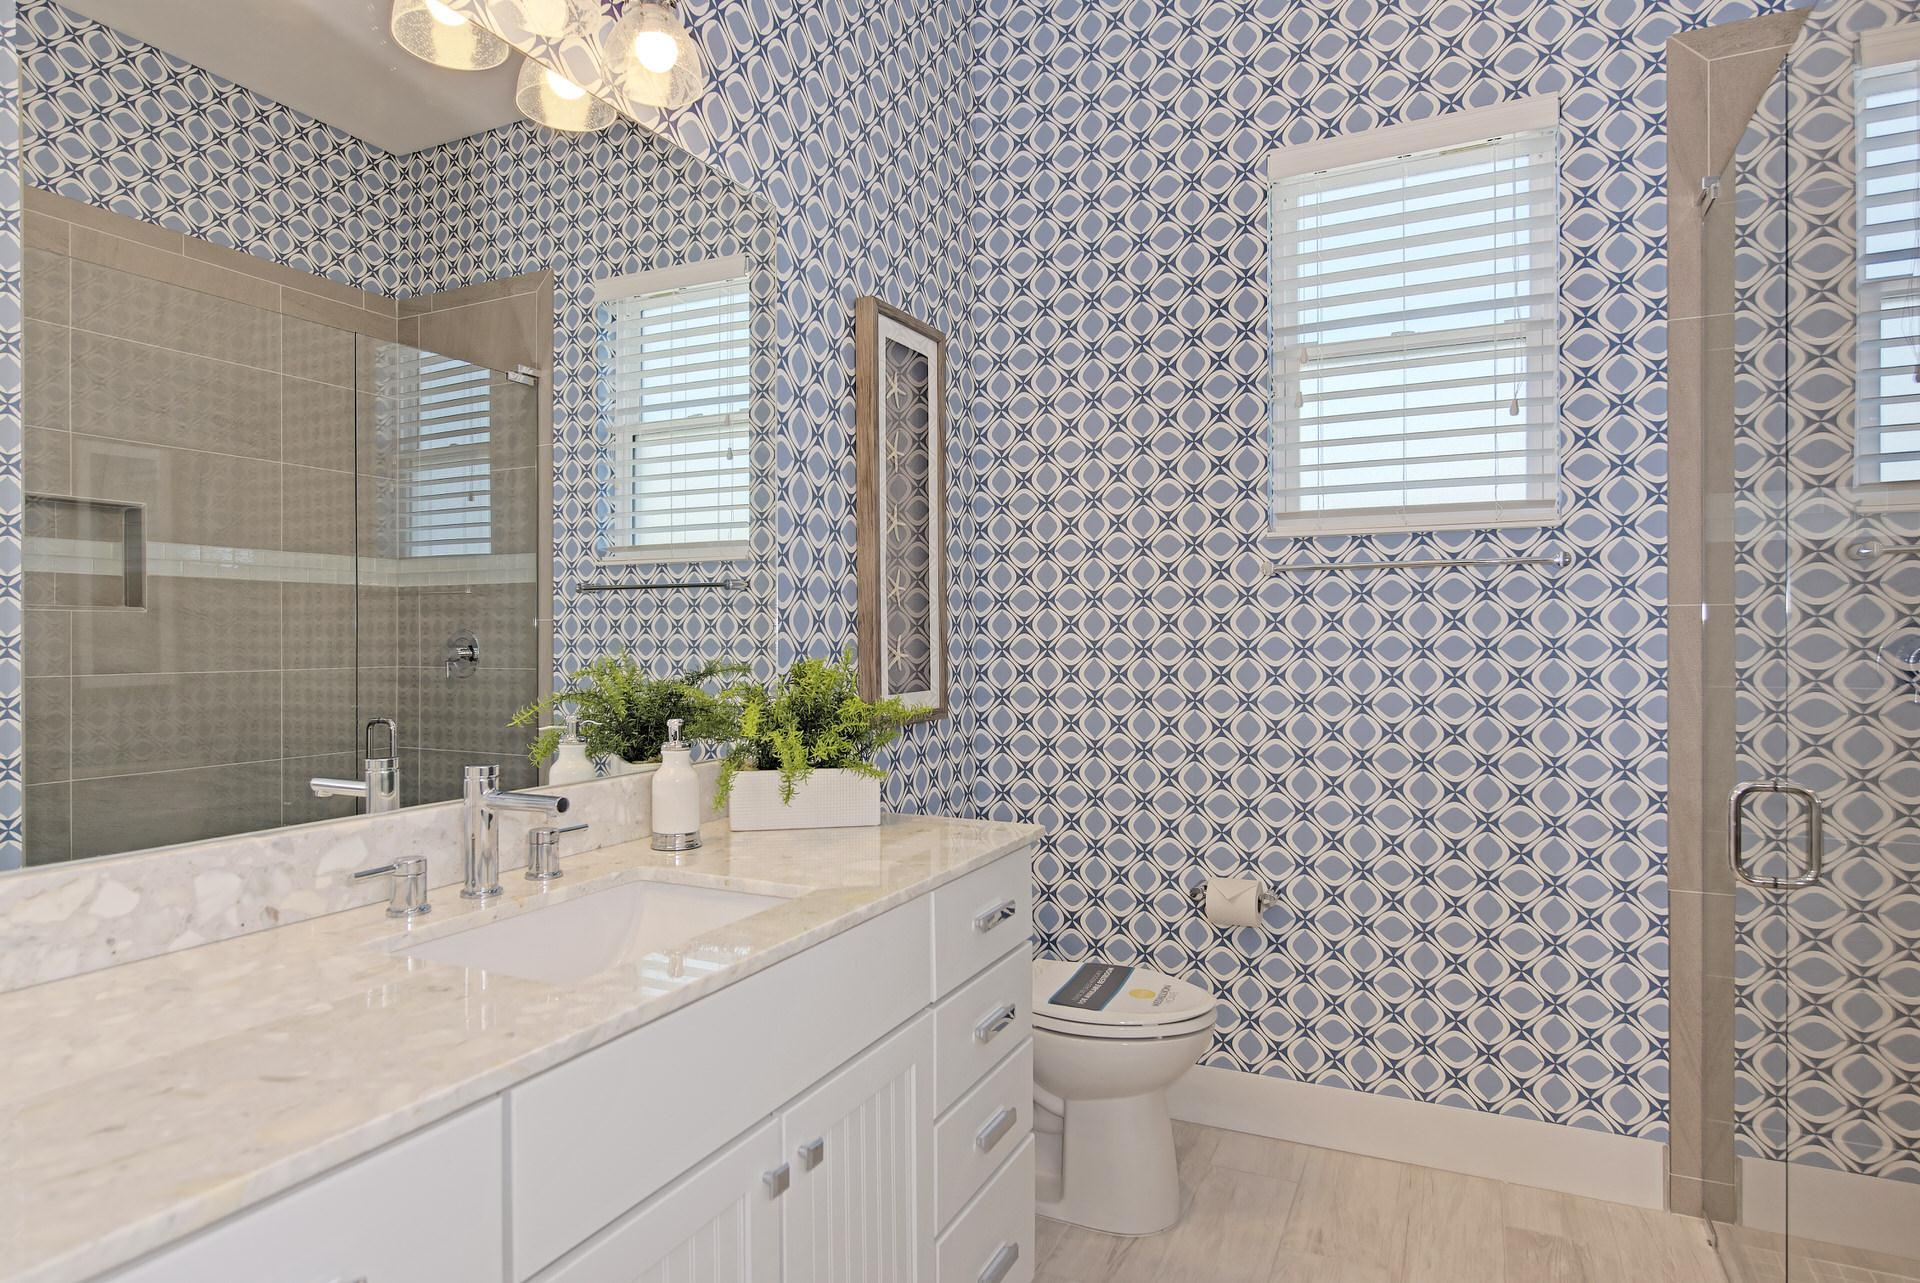 Bathroom featured in the Barbados 2800 3 Car Garage By Medallion Home in Sarasota-Bradenton, FL